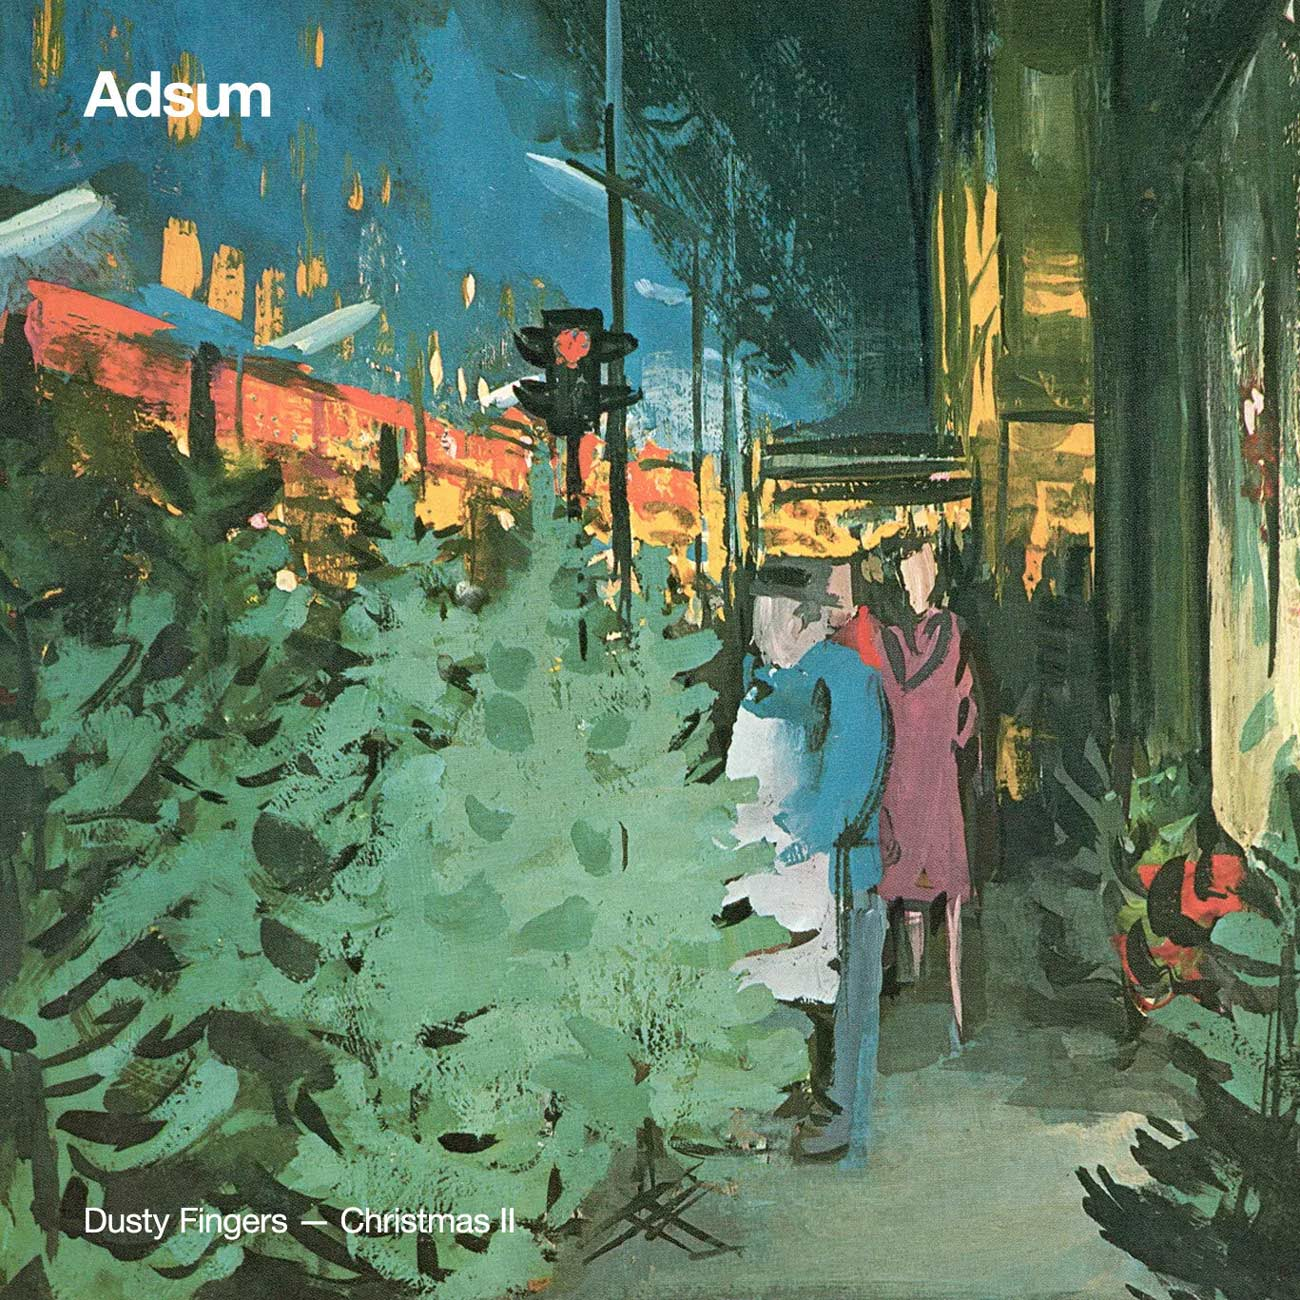 Adsum Dusty Fingers Christmas Album Cover